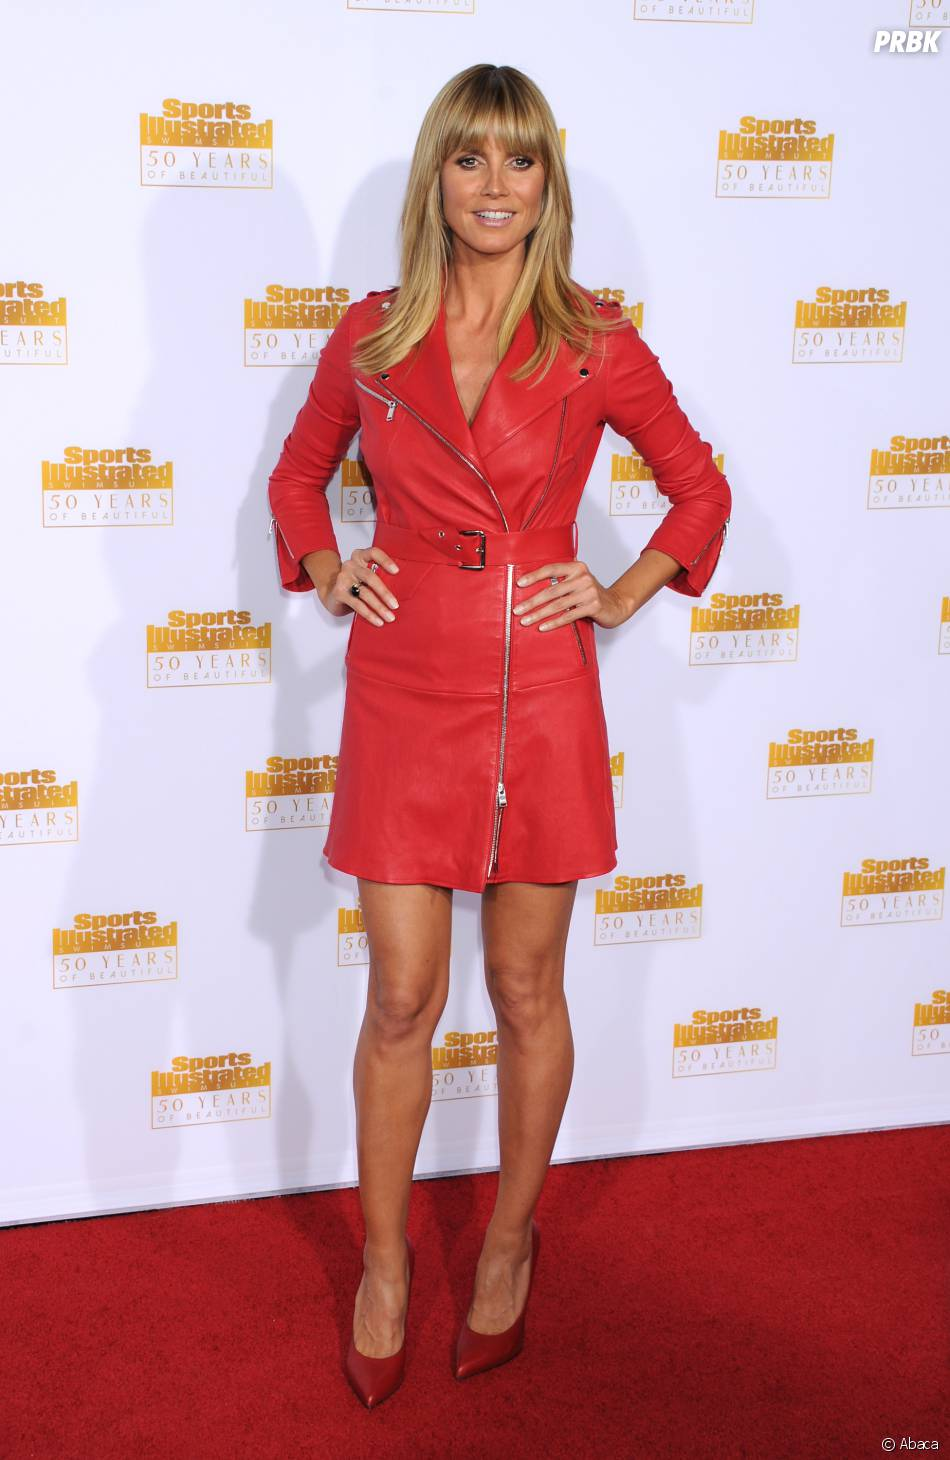 Heidi Klum à la soirée Sports Illustrated Swimsuit, le 14 janvier à Los Angeles